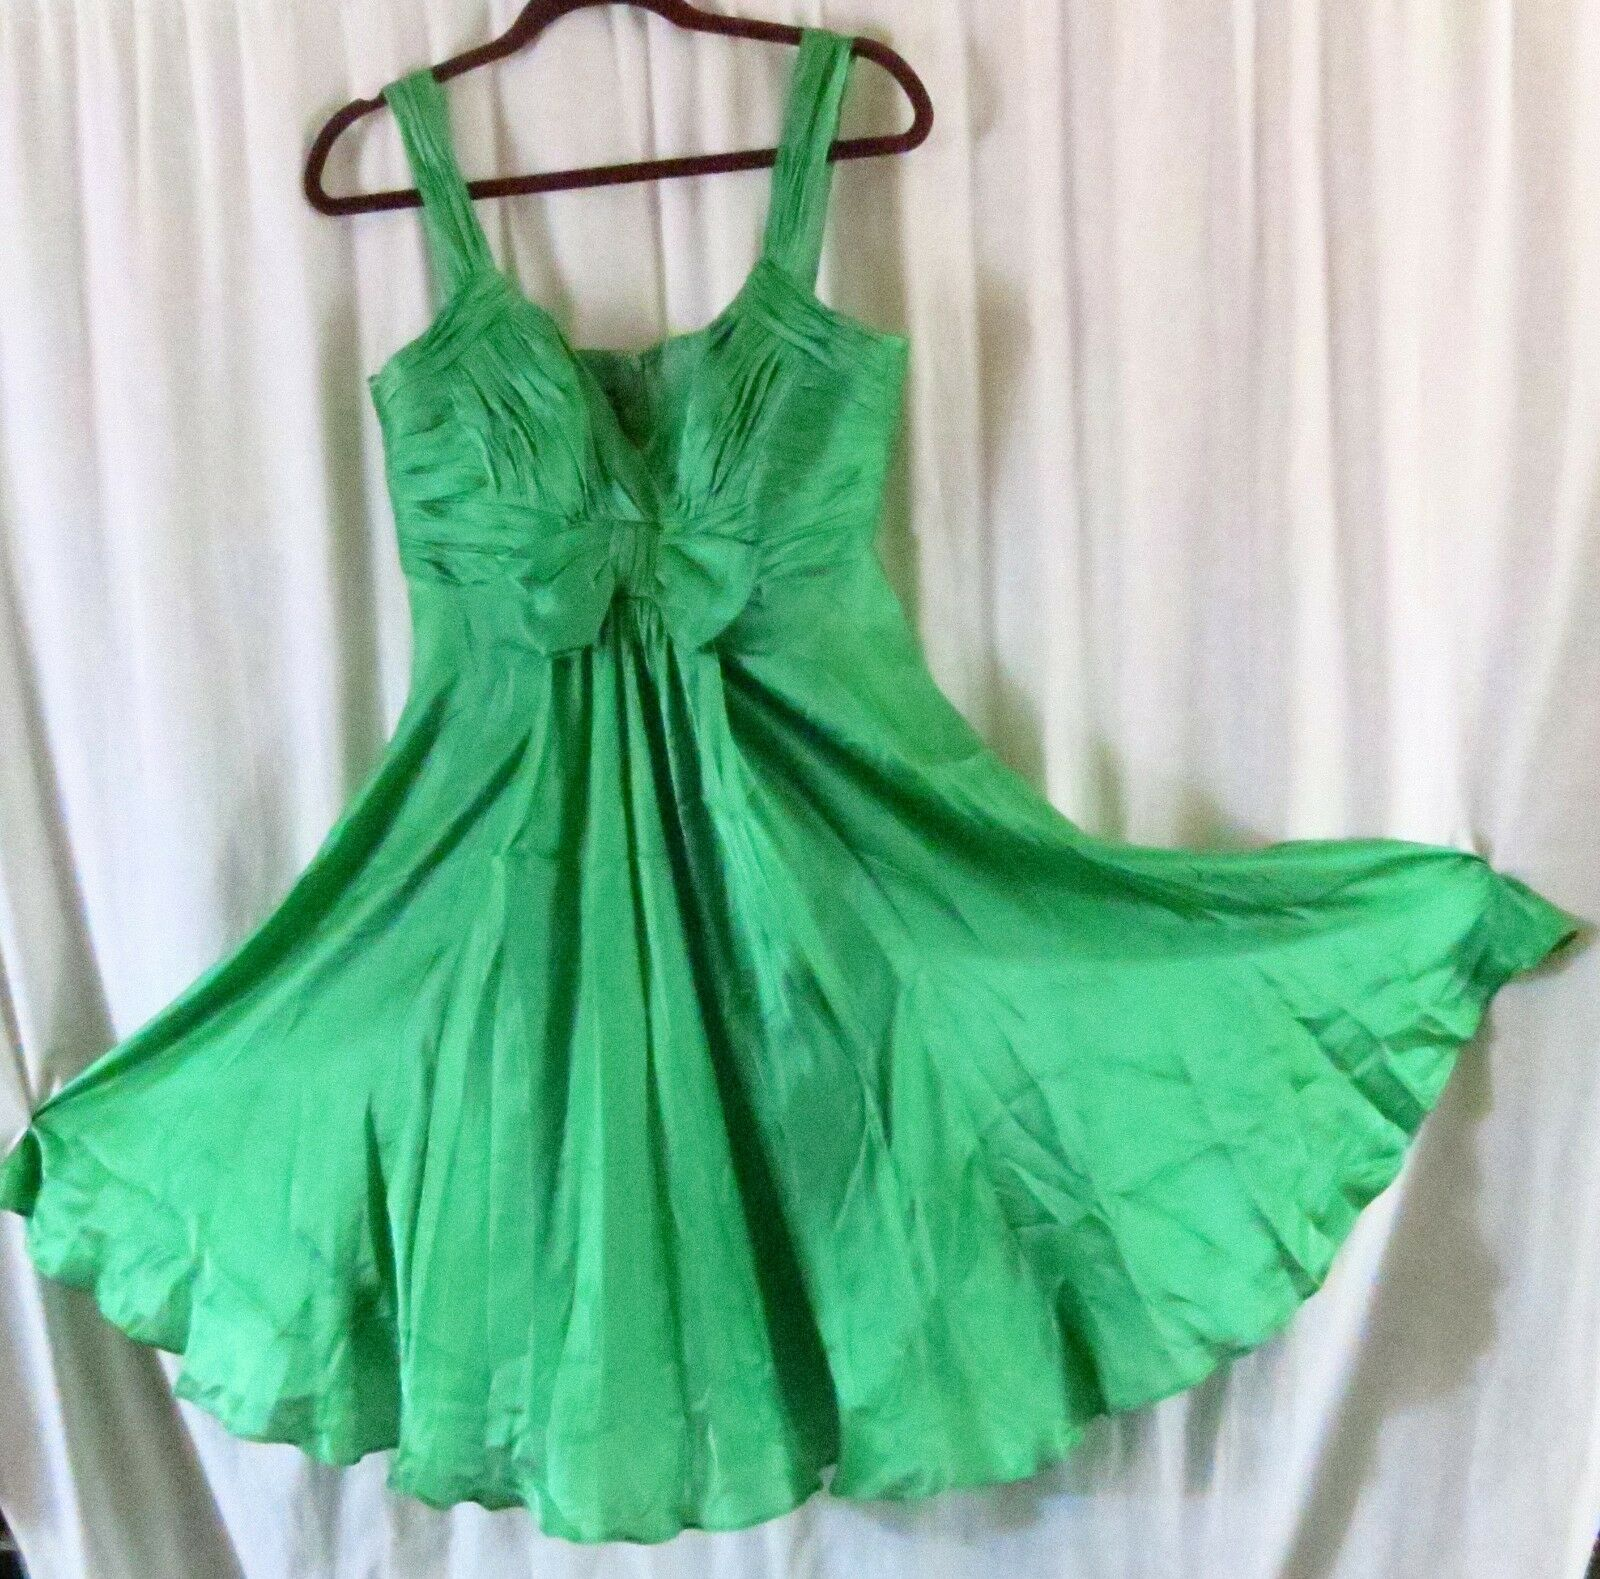 Anne Klein Dress 10 Green Strap V Neck Knee Length Cocktail Party Silk image 2